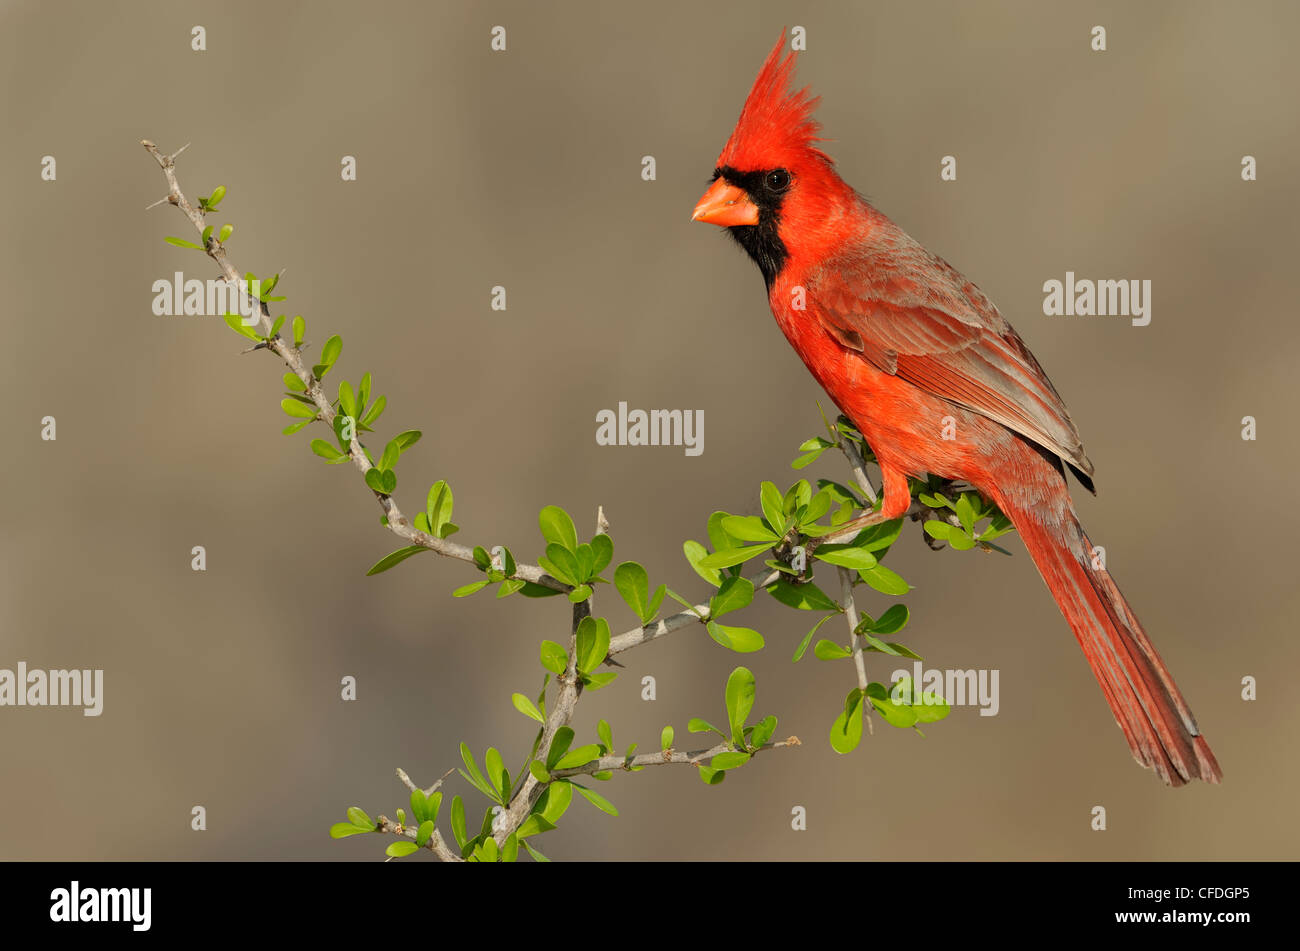 Northern Cardinal (Cardinalis cardinalis) - Santa Clara Ranch, Texas, United States of America - Stock Image